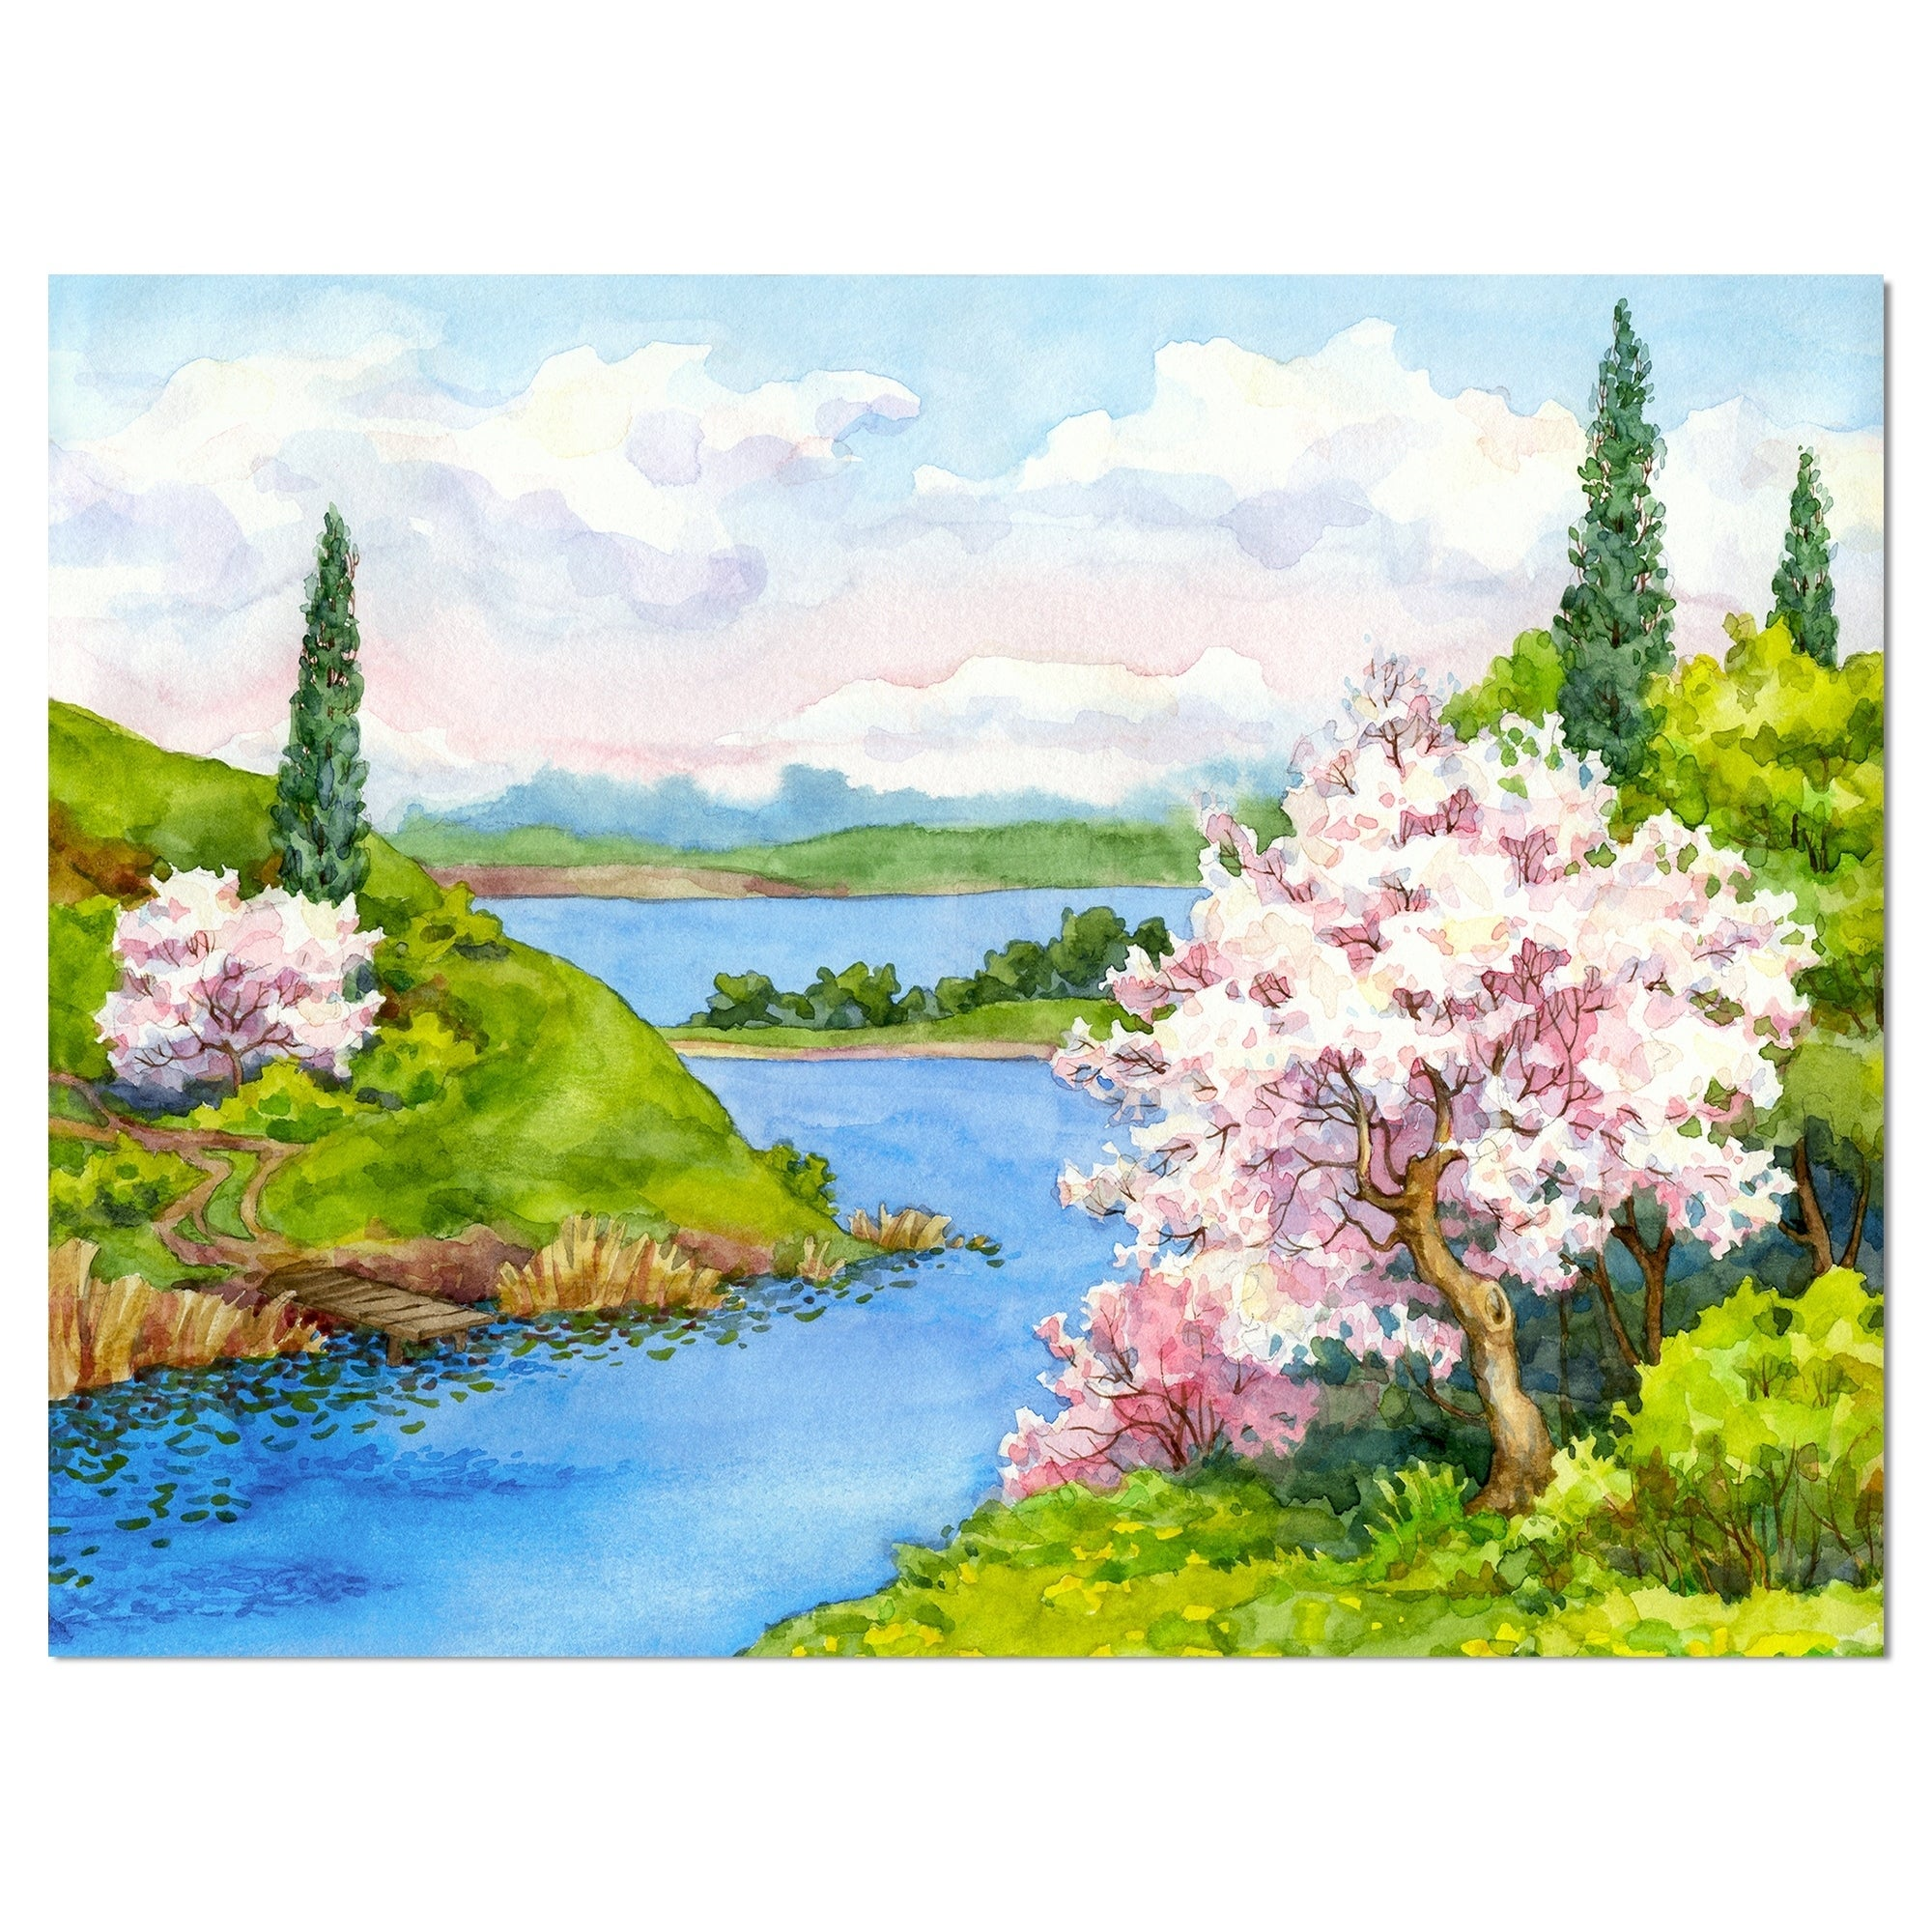 Created On Lightweight Polyester Fabric Medium x 32 in Designart Bushes and Trees in River Bank Landscape Tapestry Blanket D/écor Wall Art for Home and Office 39 in